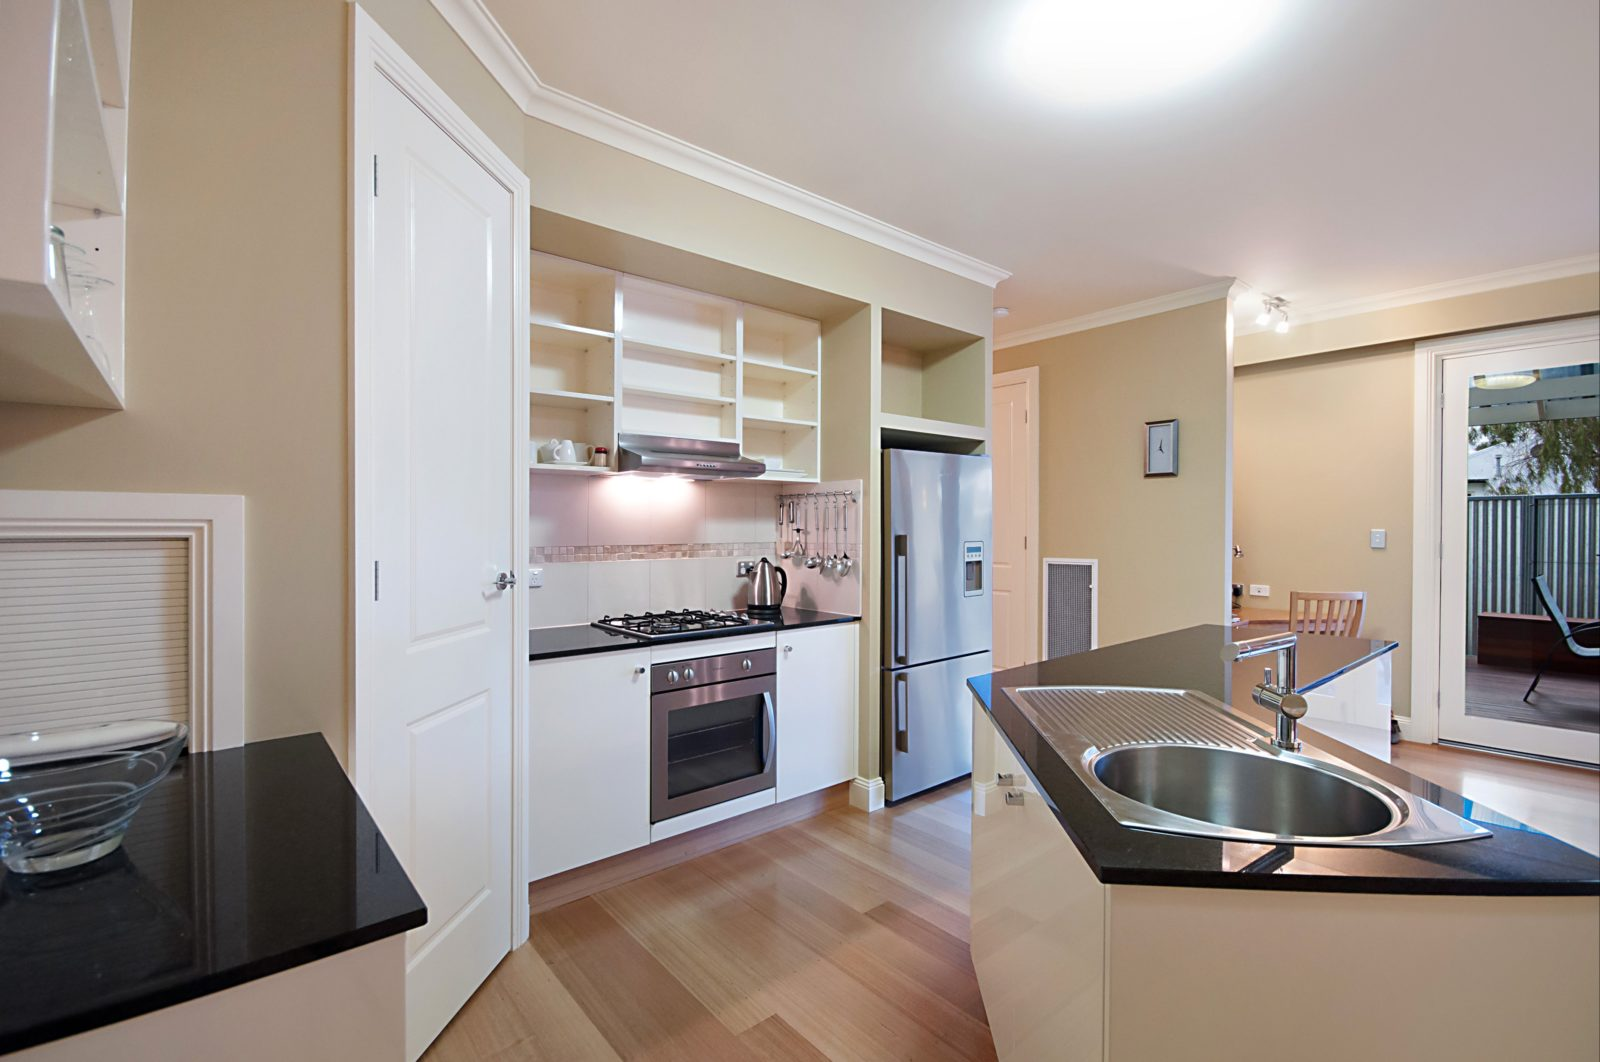 Another beautifully designed kitchen